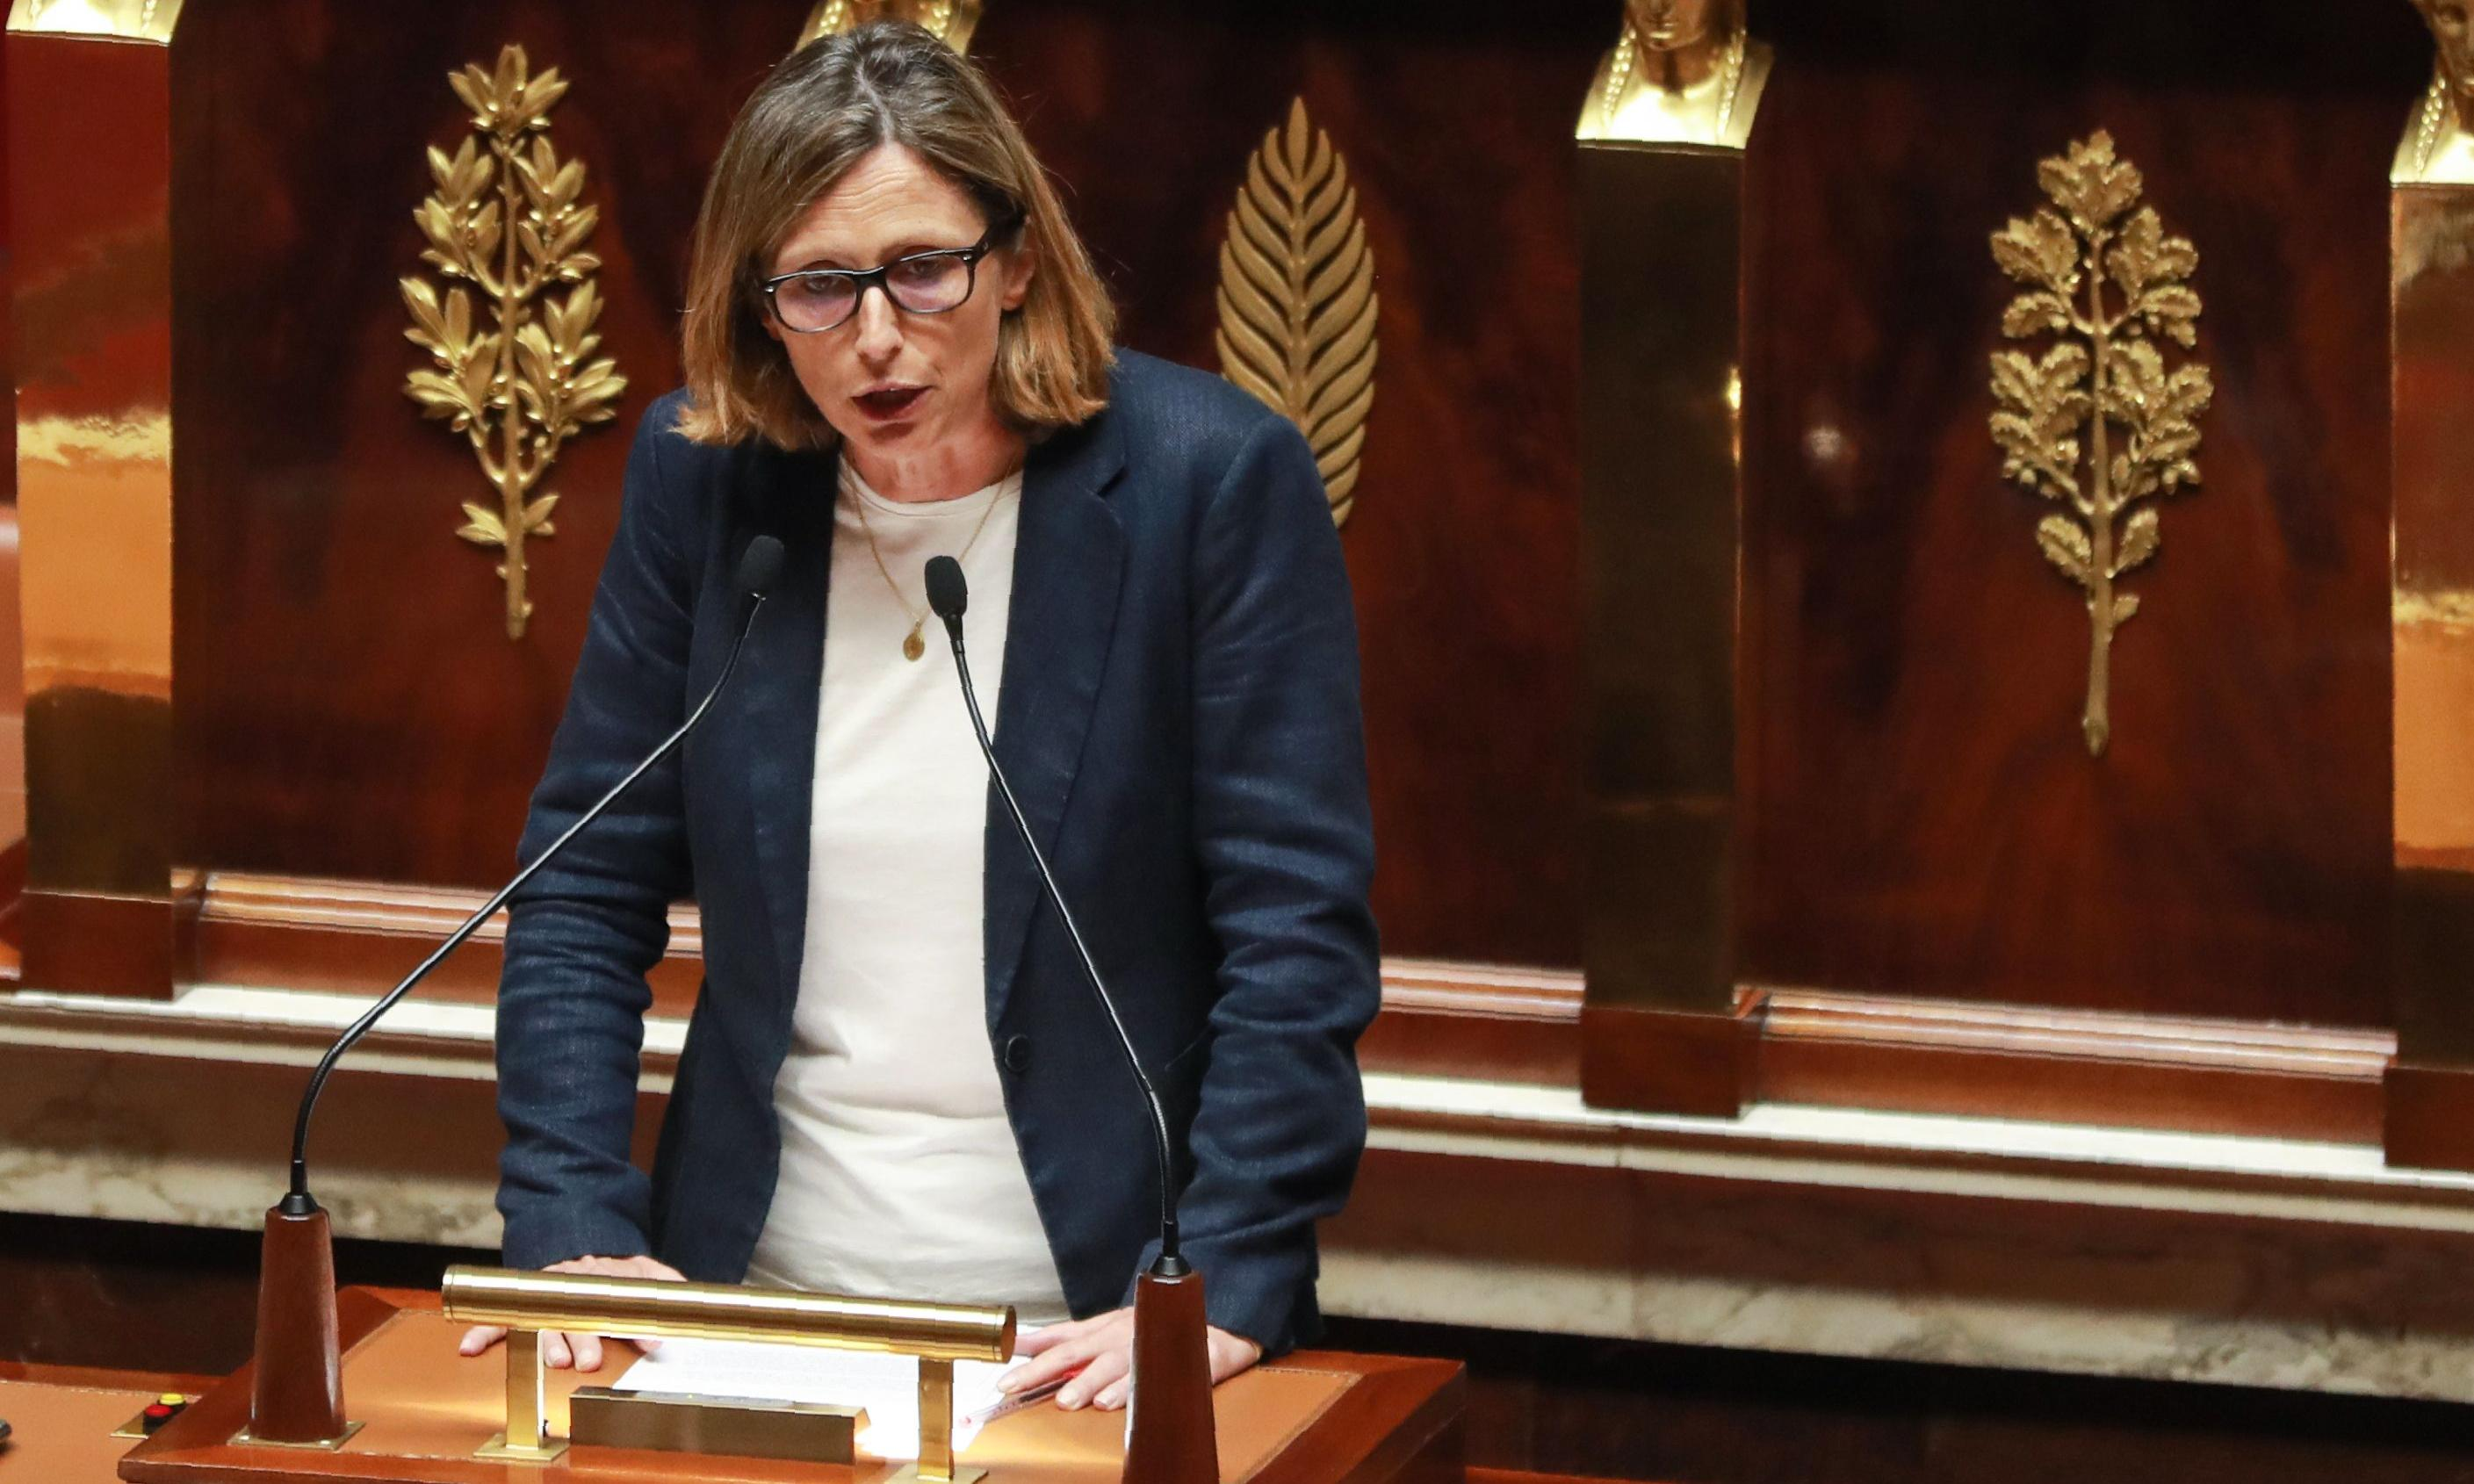 French MPs approve IVF draft law for single women and lesbians